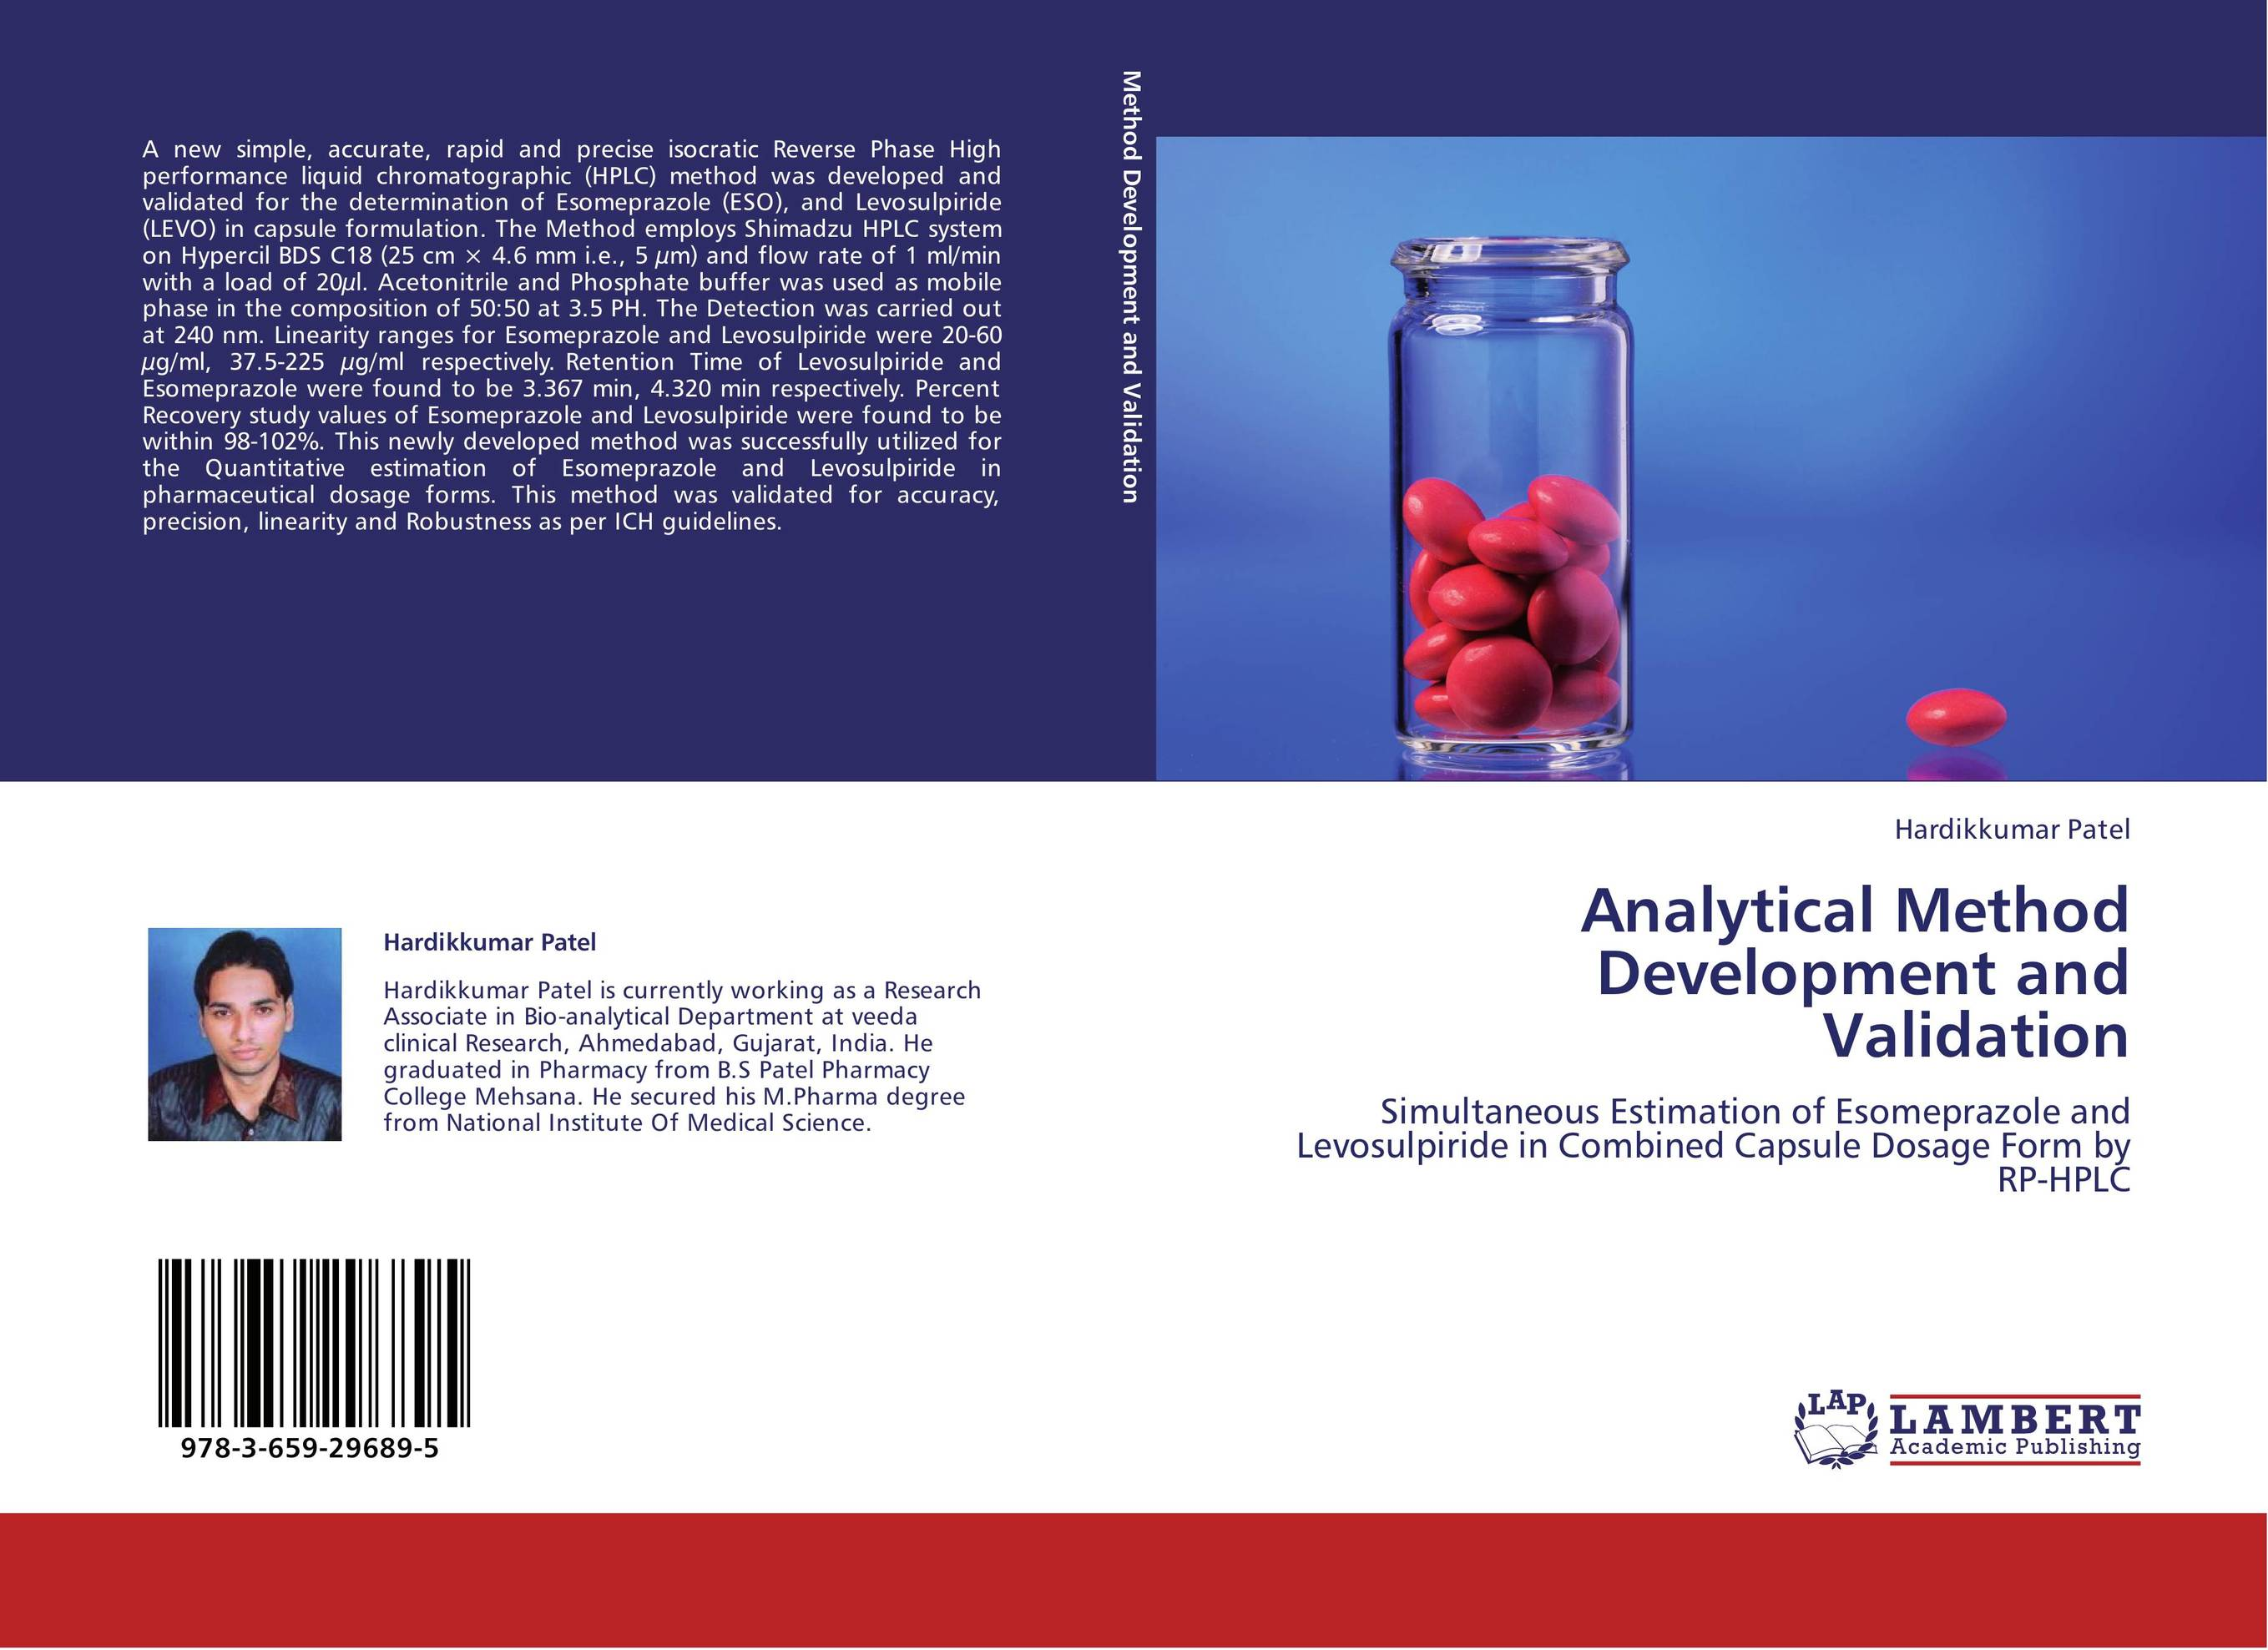 application of gas chromatography in pharmaceutical analysis Course description gas chromatography (gc) is one of the important analytical techniques used in the field of pharmaceutical analysis of either raw materials or finished pharmaceutical products.